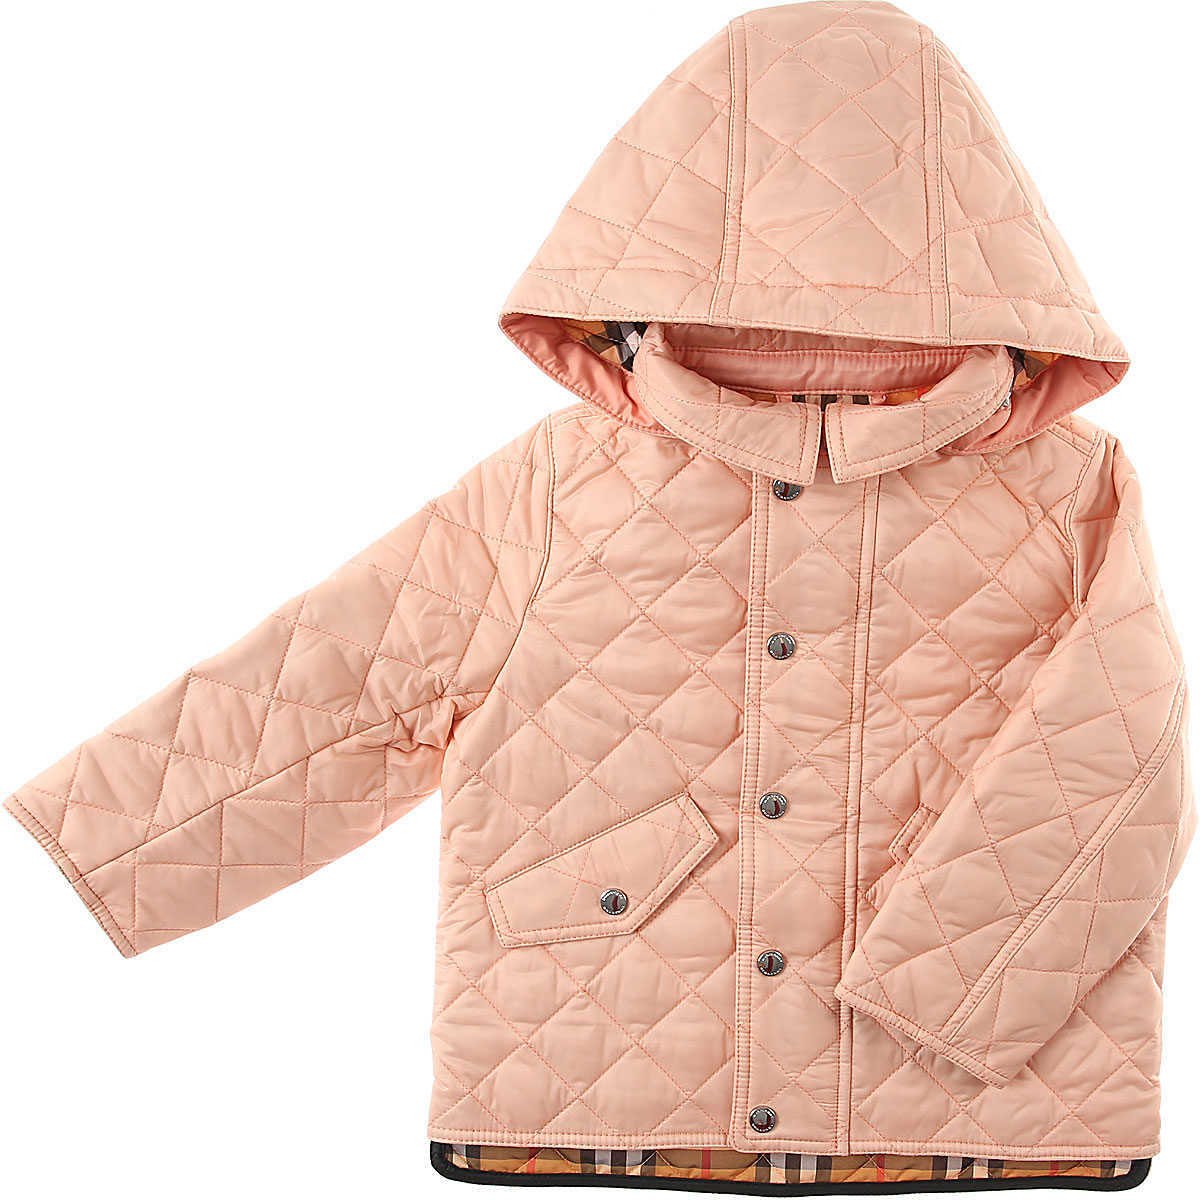 Burberry Baby Jacket for Girls Pink DK - GOOFASH - Womens JACKETS